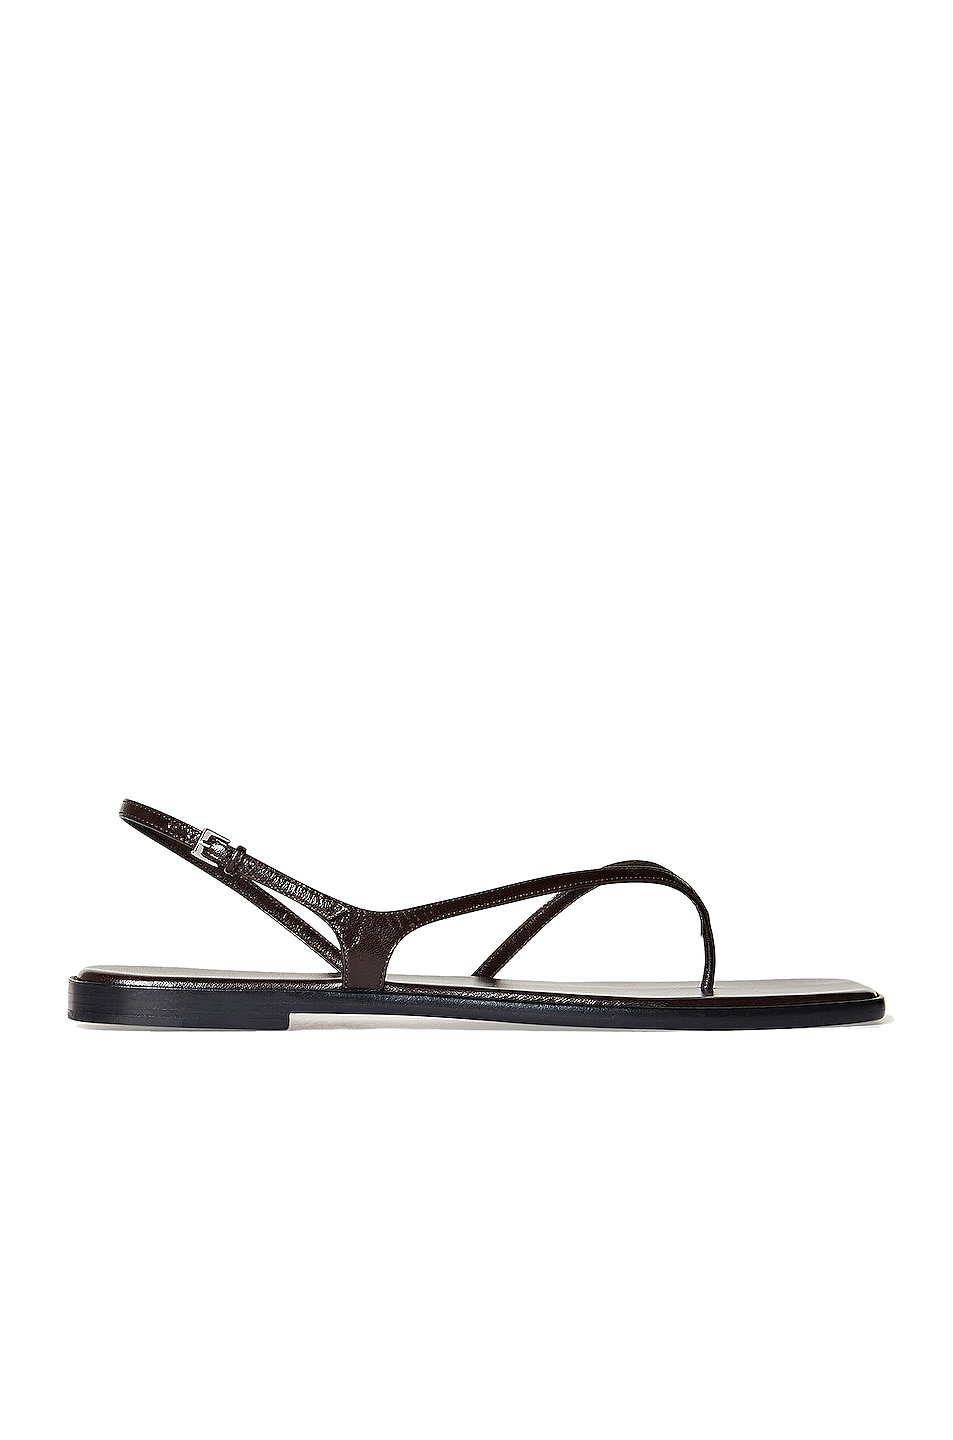 Image 1 of The Row Constance Leather Flat Sandals in Mocha